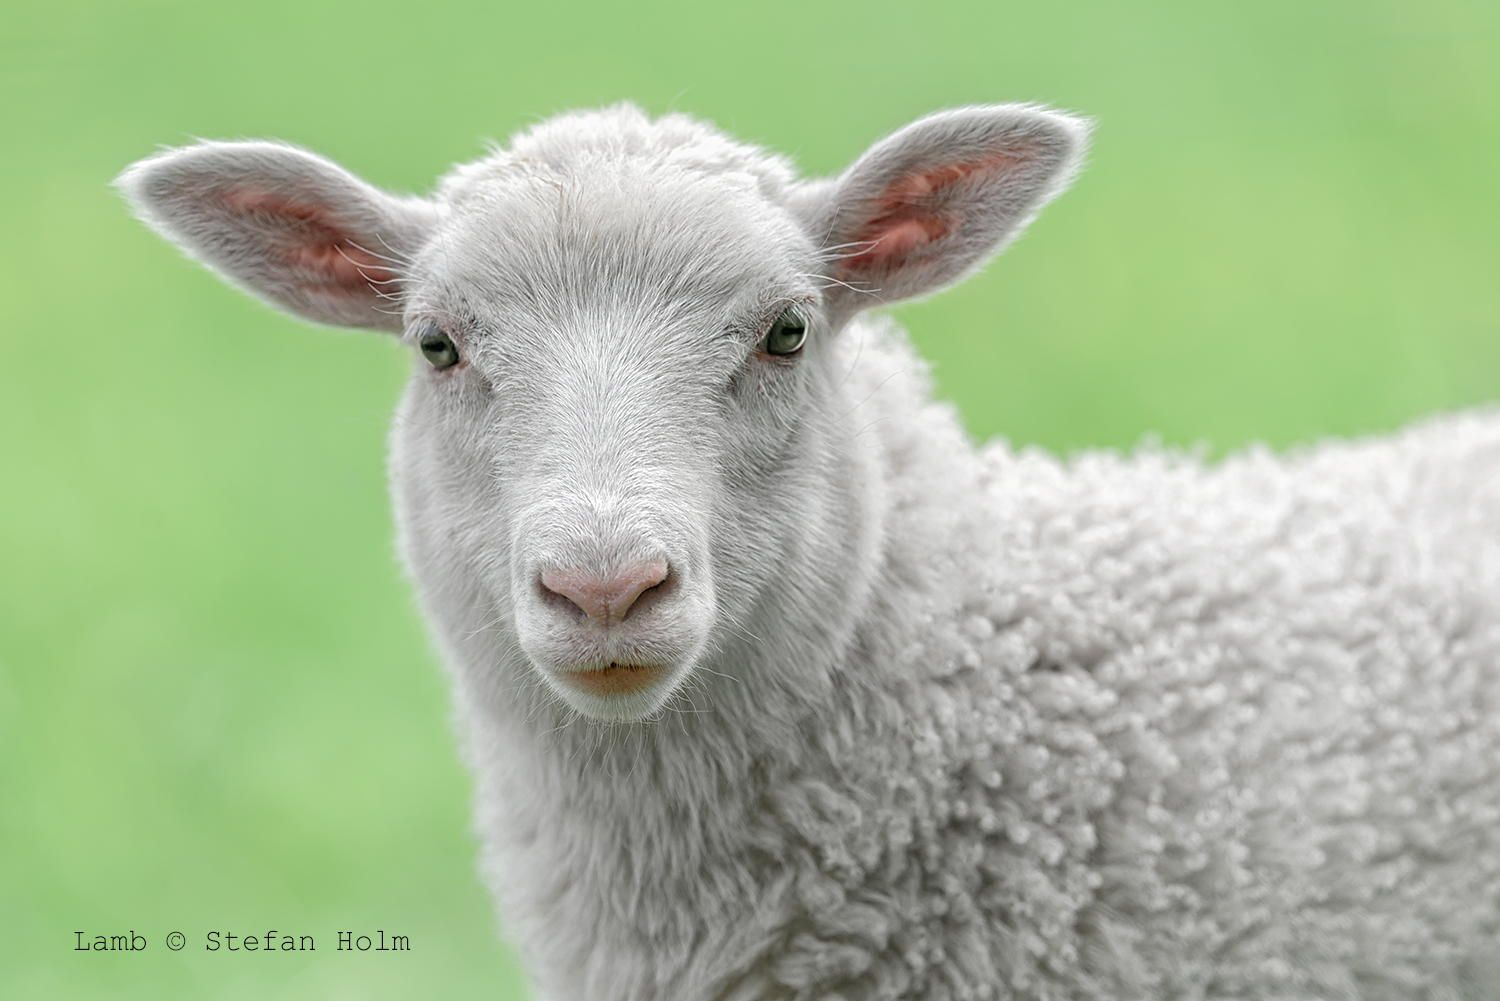 5. Face of a white lamb